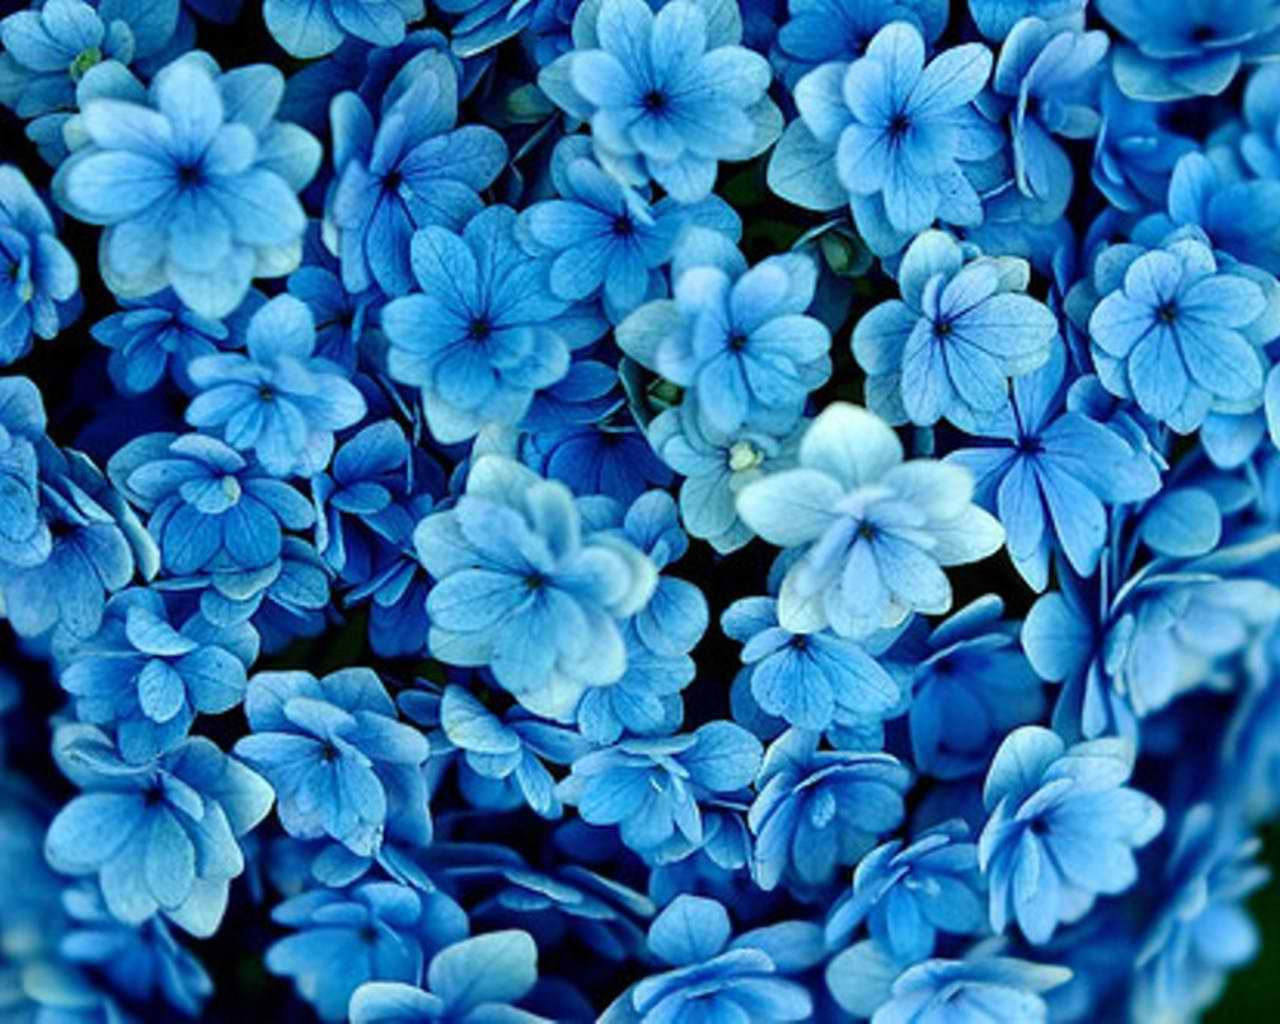 Images Of Blue Flowers Wallpaper Hd 3 in 2020 Blue